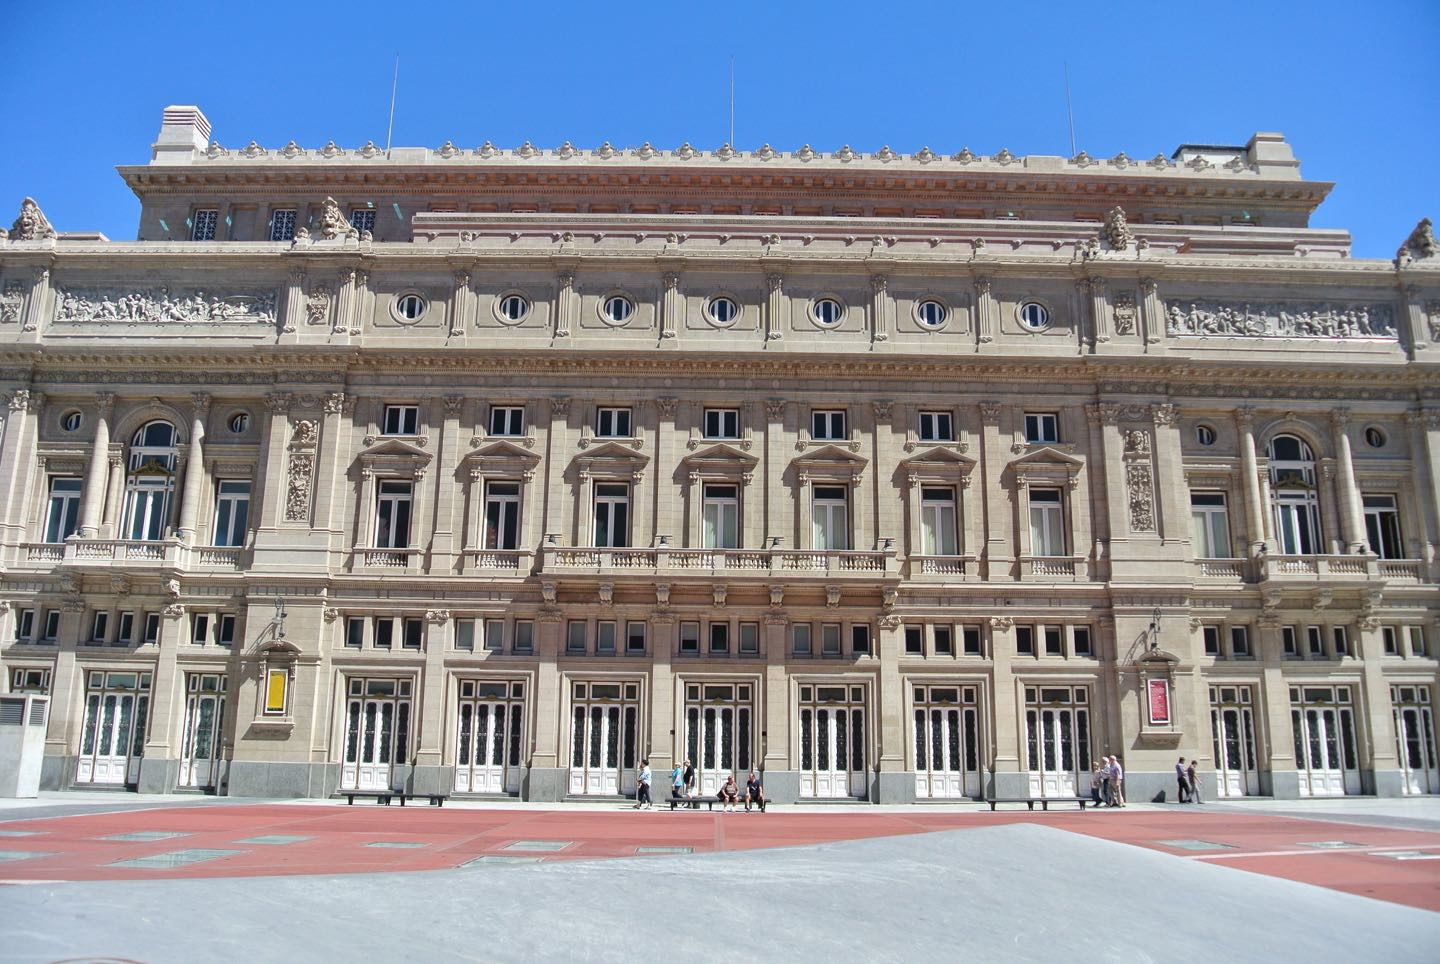 Teatro Colon, one of the most important theaters in the world.